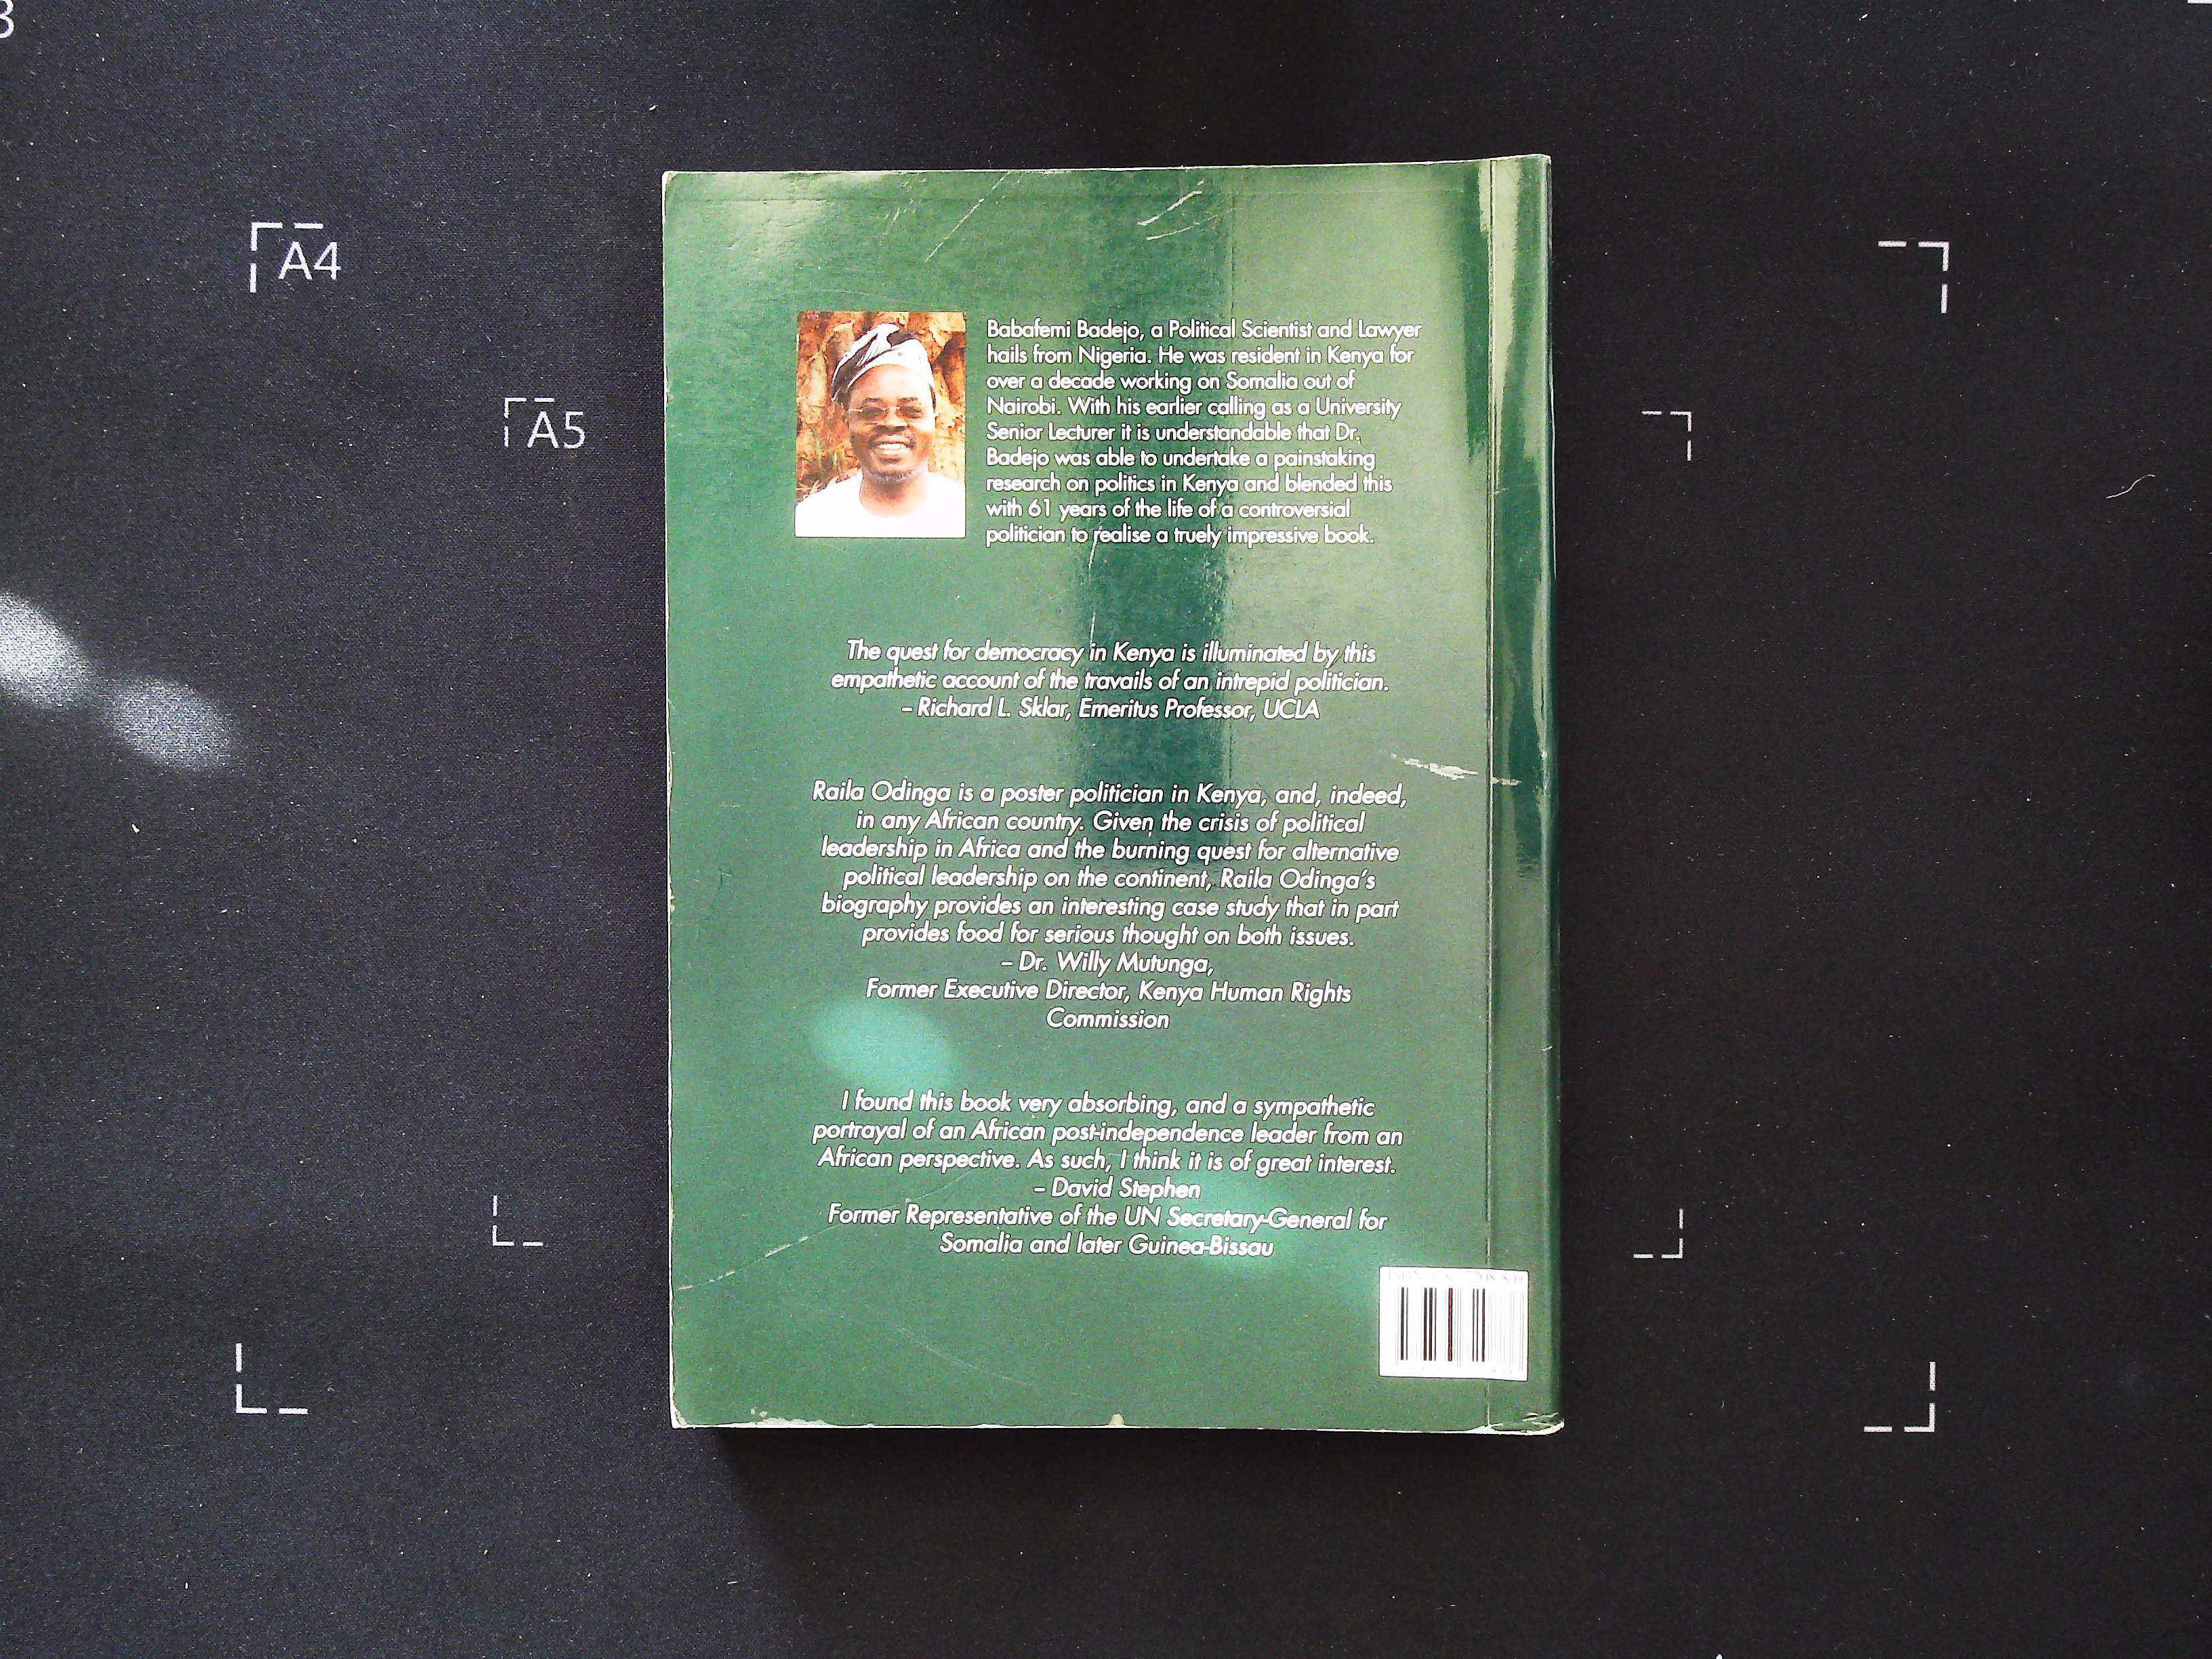 Raila Odinga An Enigma in Kenyan Politics by Babafemi A. Badejo softback book 367 pages signed and - Image 2 of 4